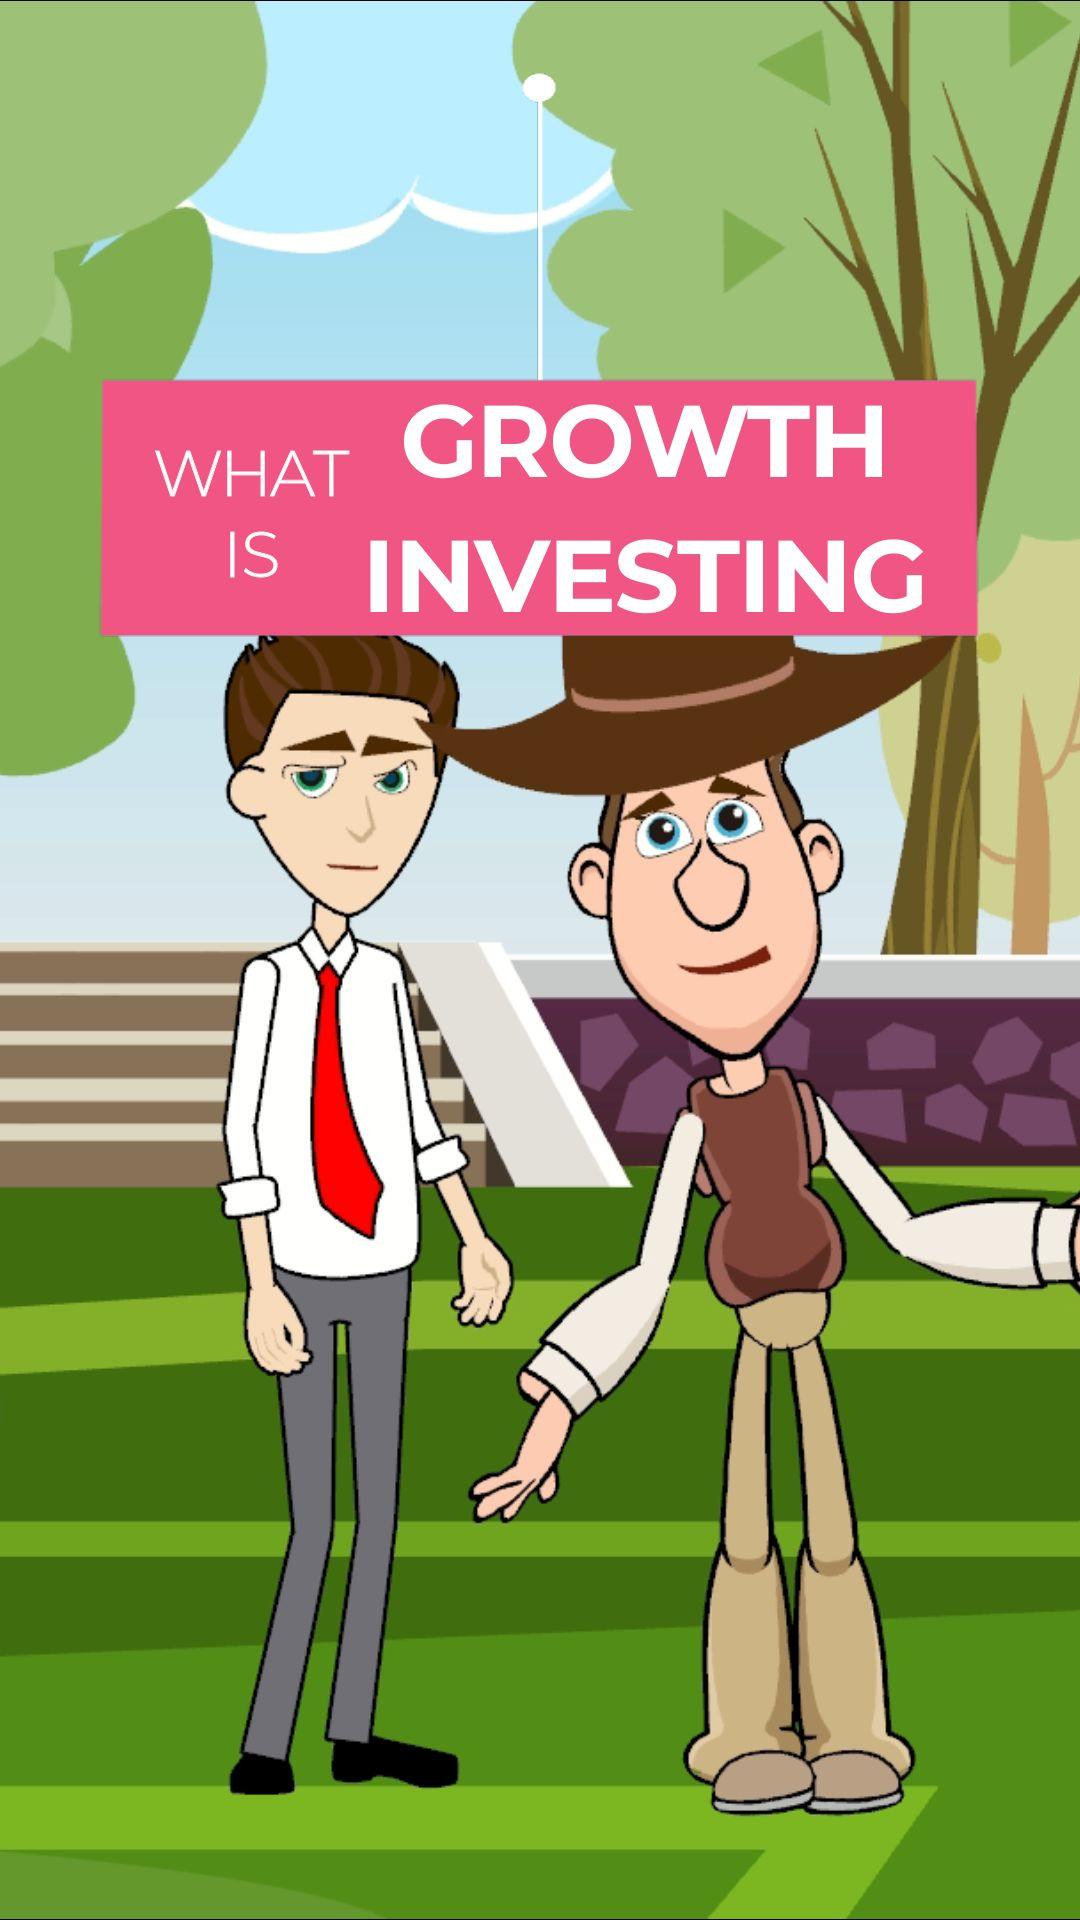 What Are Growth Stocks and Growth Investing - Growth Investing - Shorts